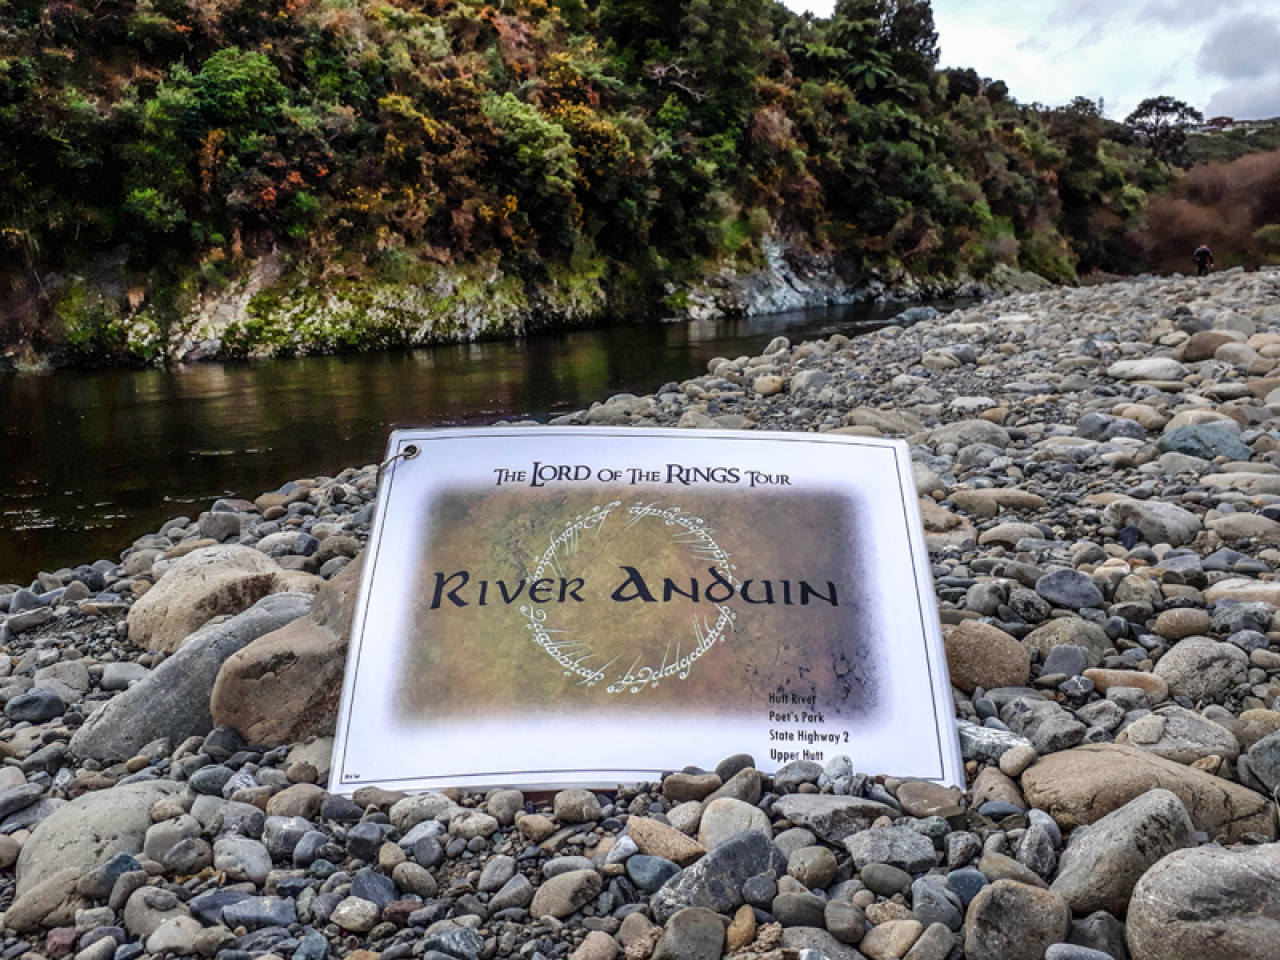 This small part of the Hutt River was used for some of the scenes in The Fellowship of the Ring, when the fellowship paddles down the mighty River Anduin.